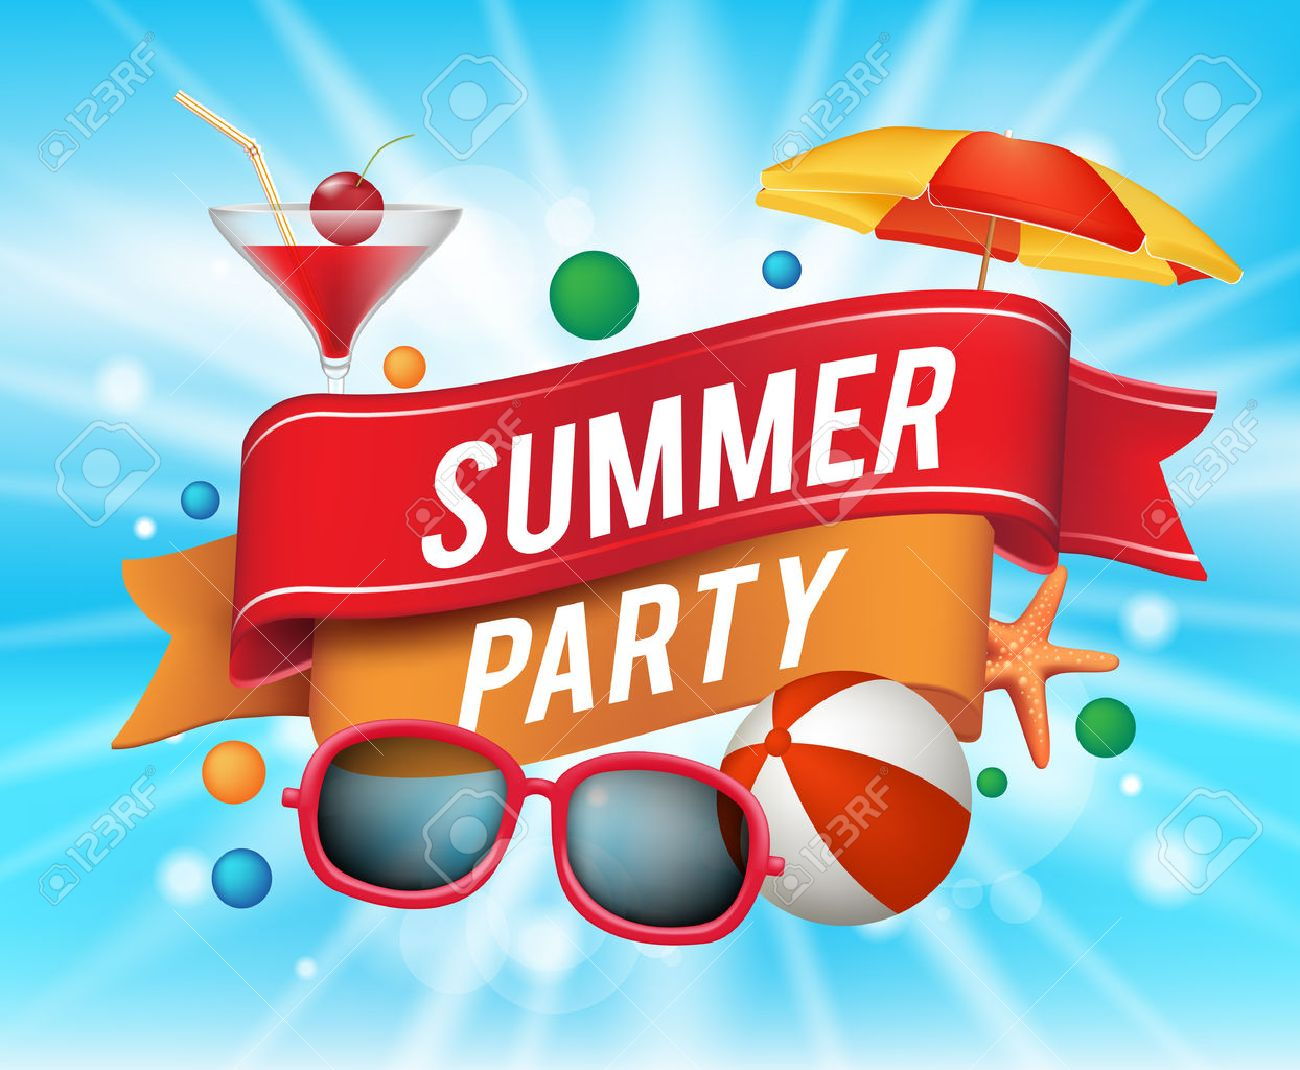 Summer Party Poster With Colorful Elements And A Text In A Ribbon With Blue Background